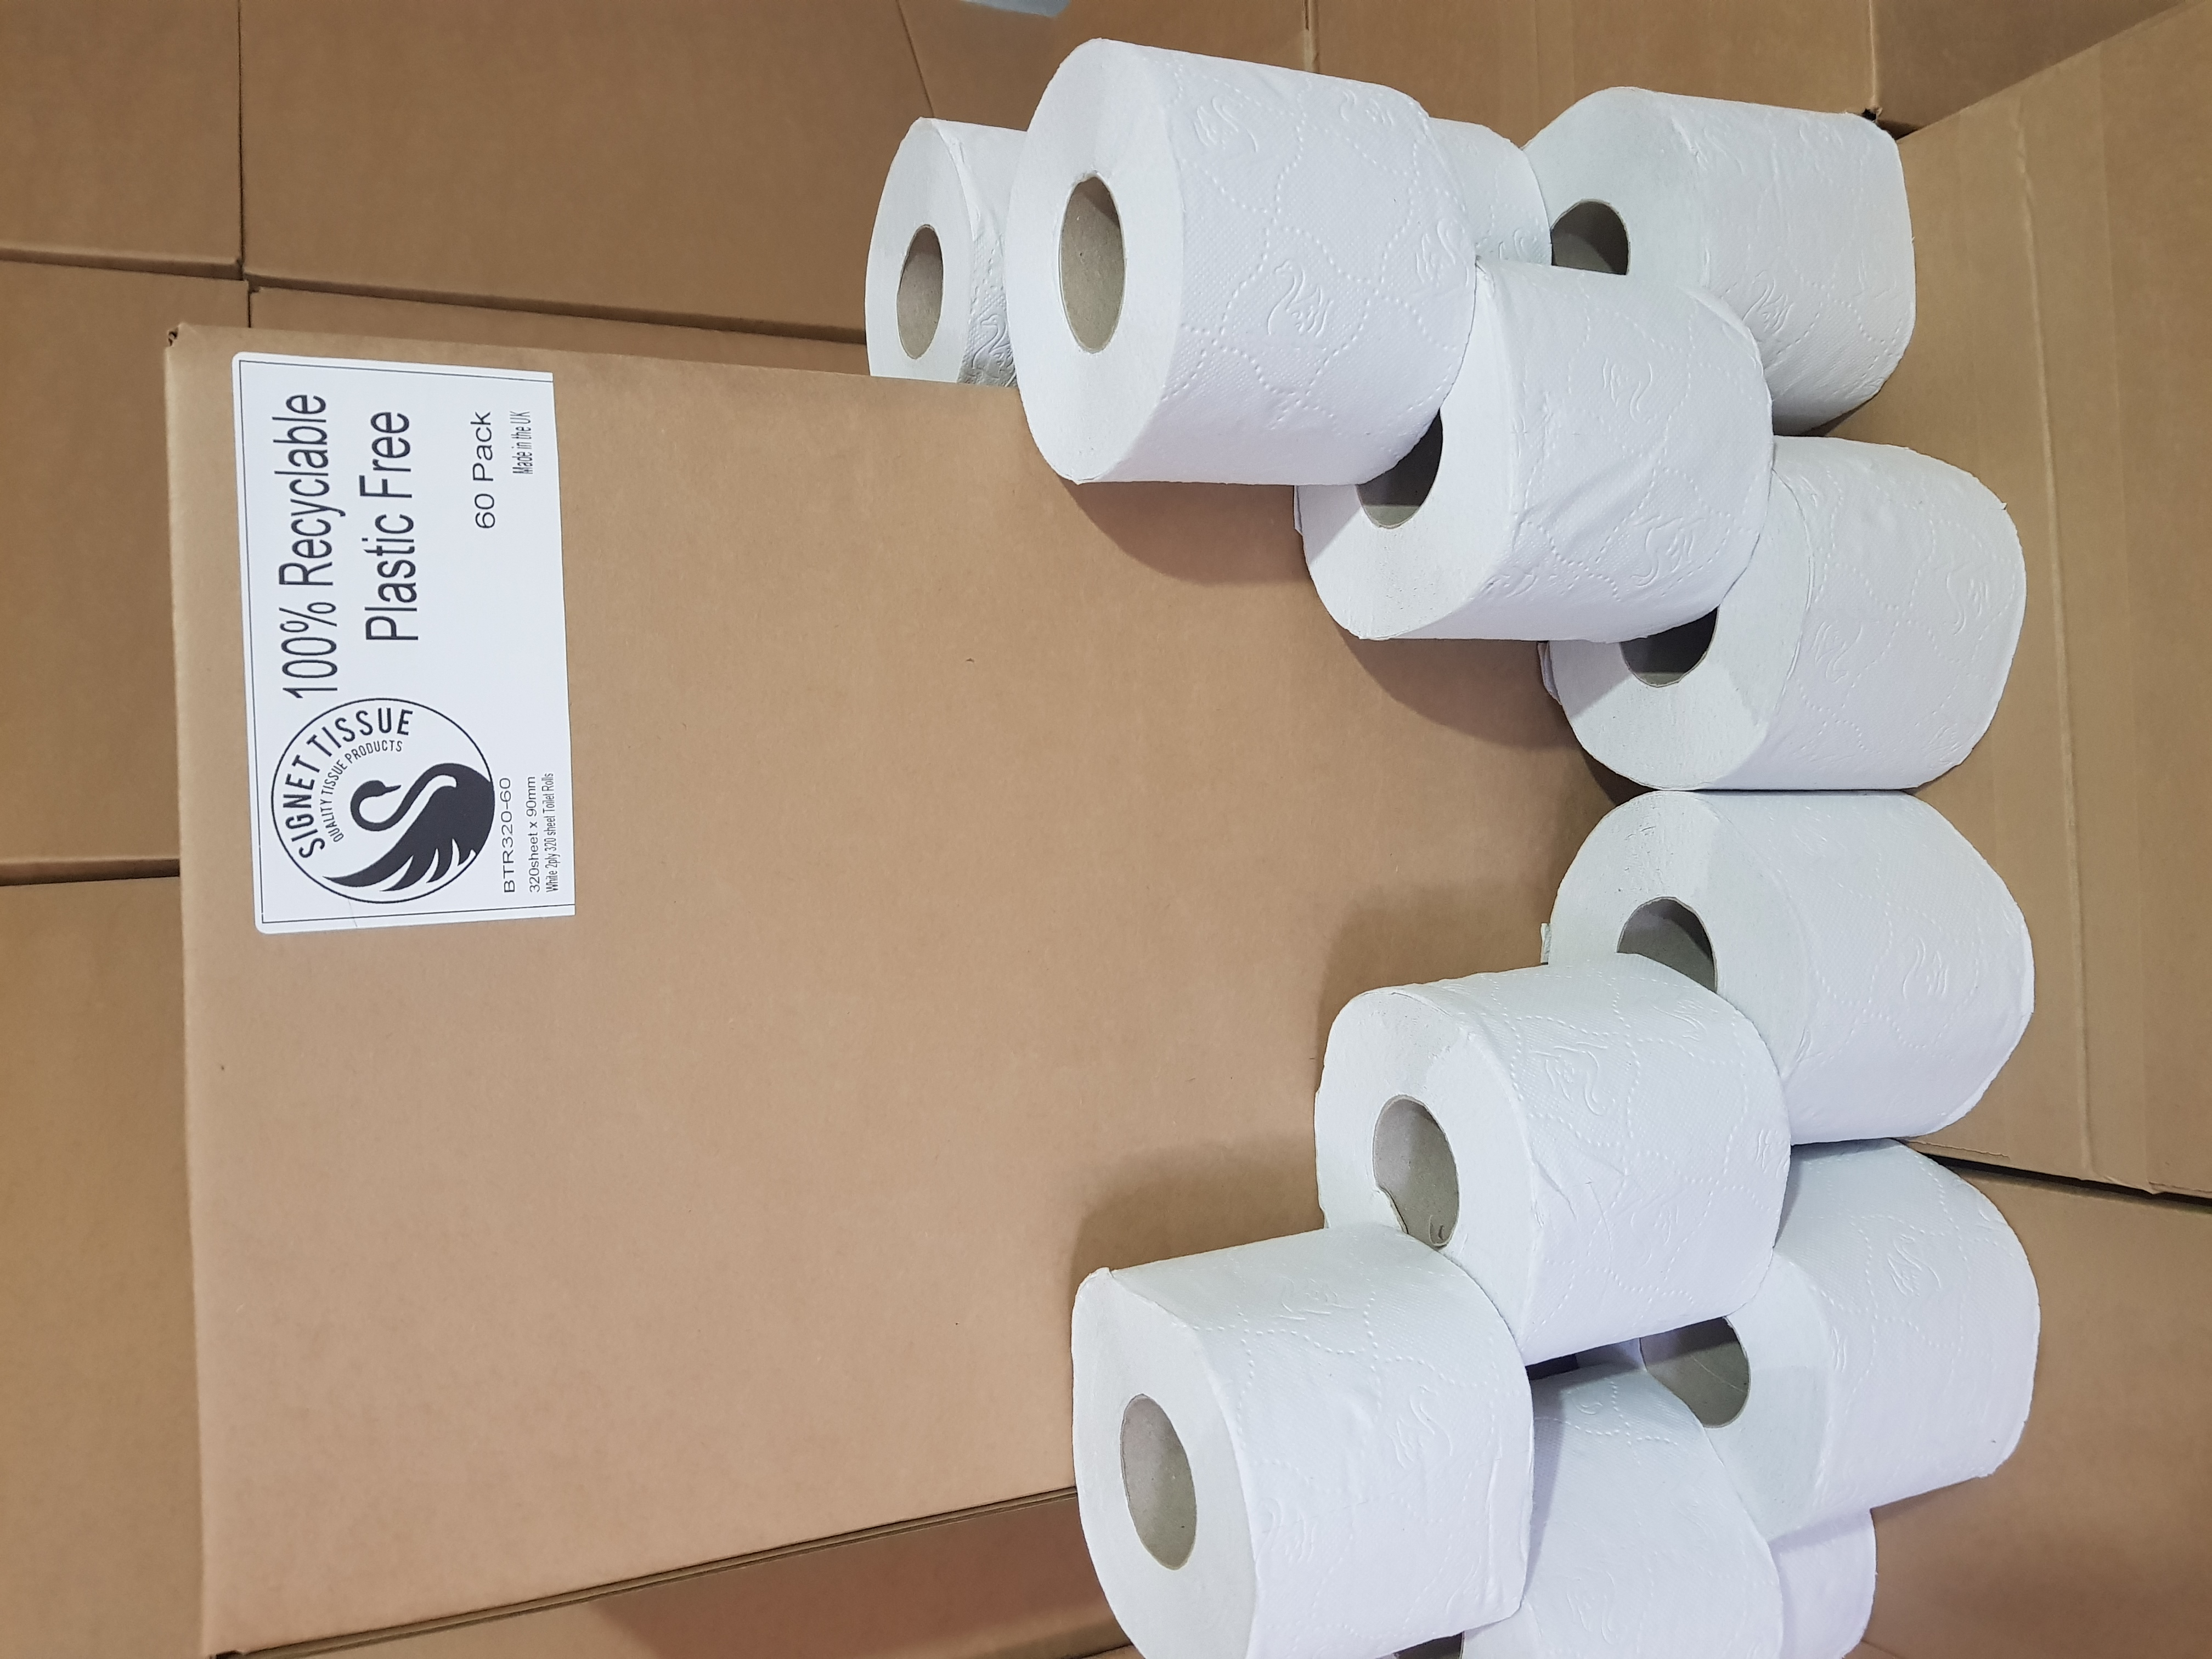 100% recyclable, No Plastic used, recycled tissue, 60 rolls per box